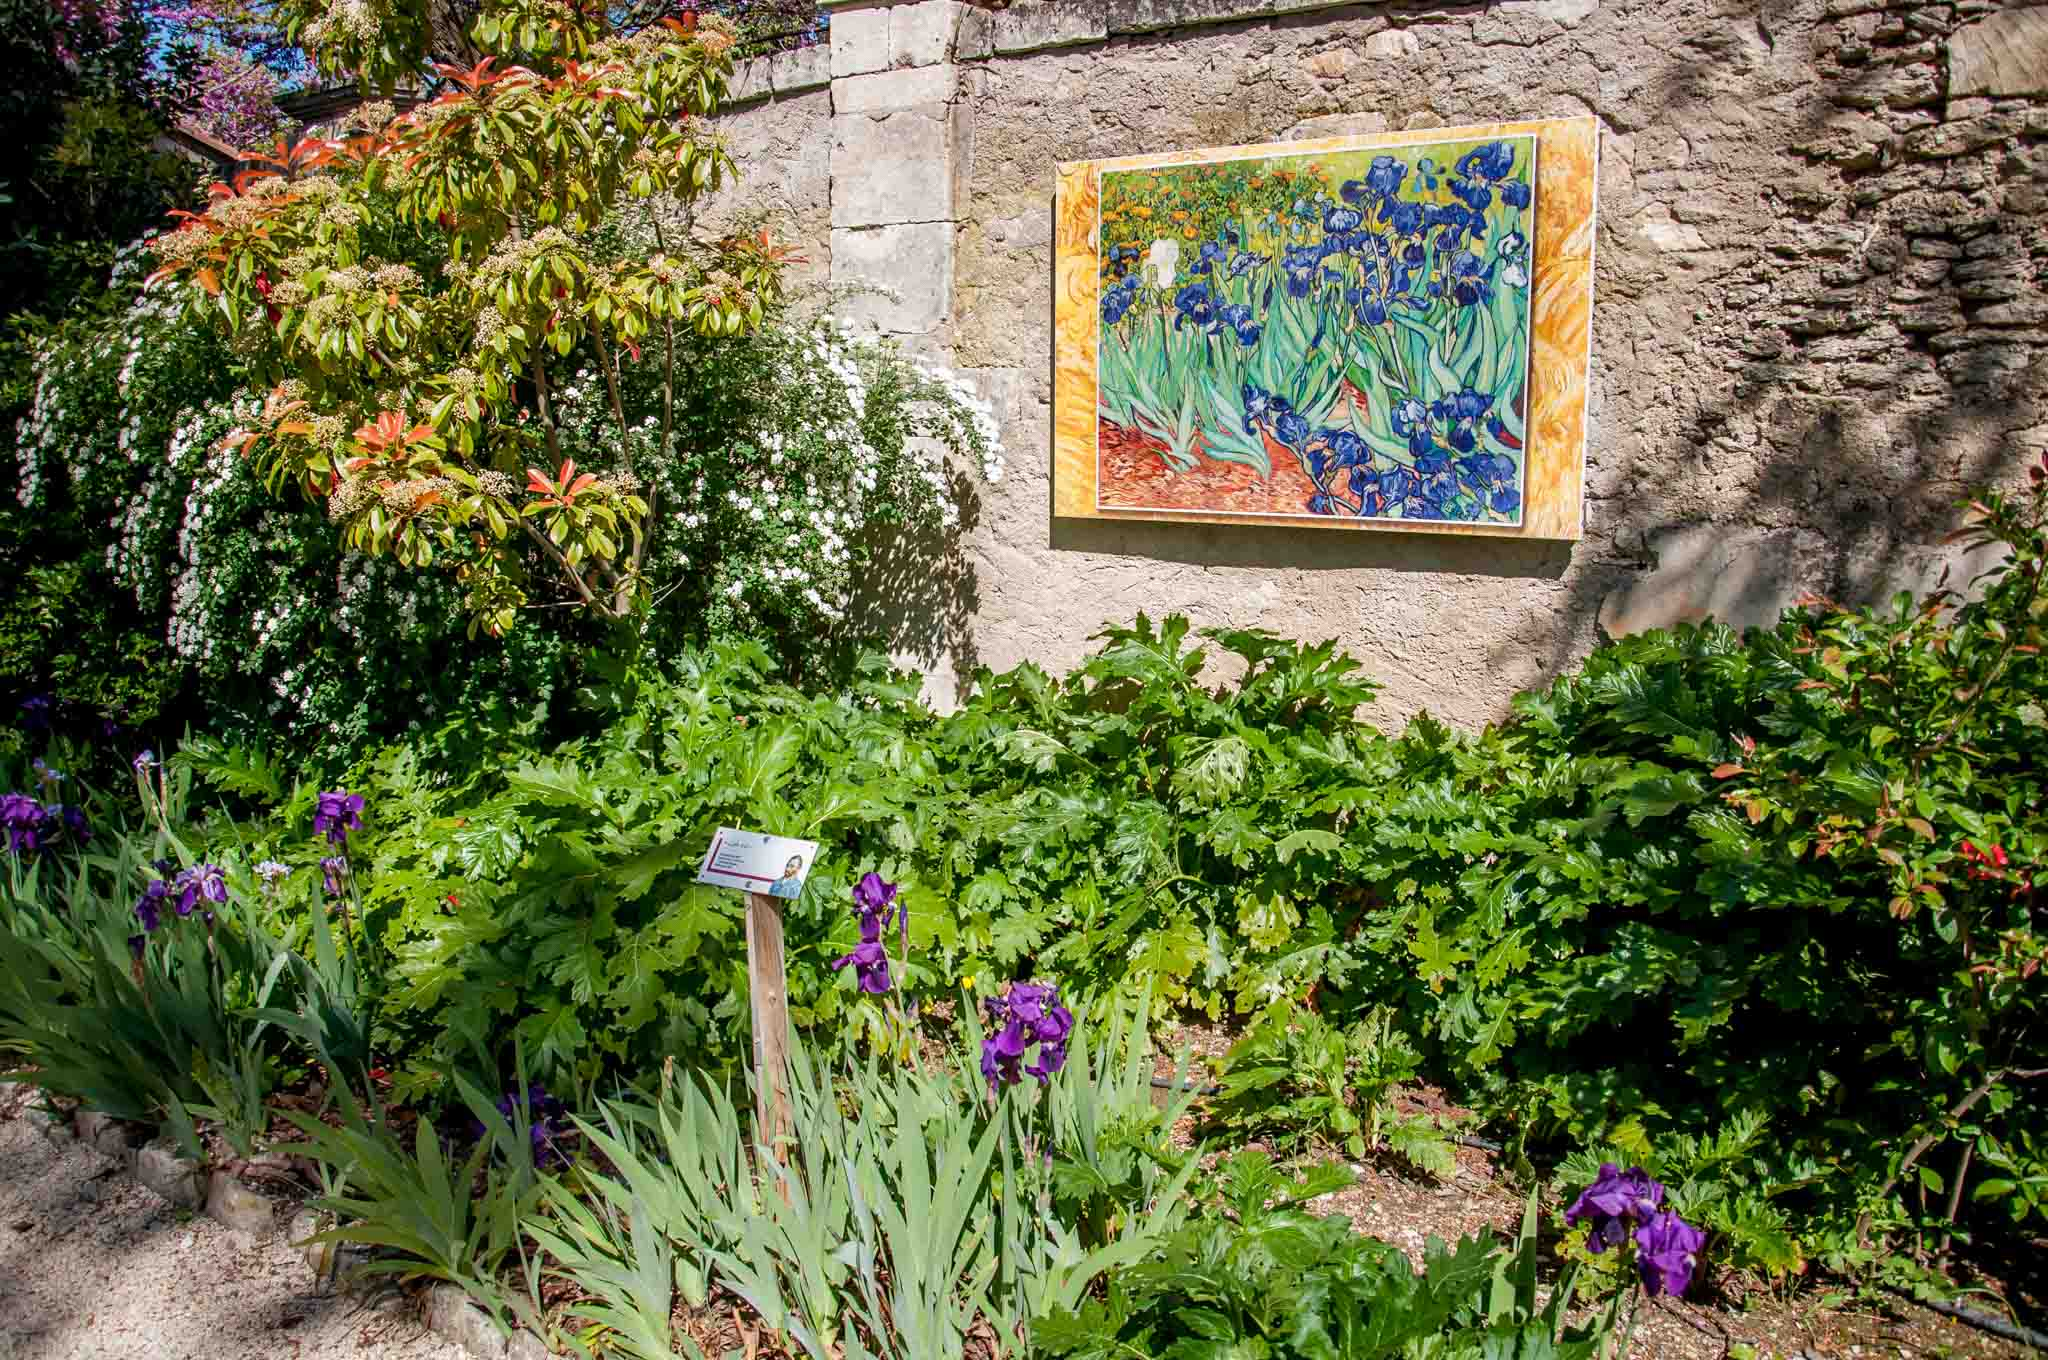 In Saint-Remy-de-Provence, France, many of Van Gogh's paintings are shown in situ -- visitors can see an image of the work in the exact setting where it was painted. This one is at Saint Paul's asylum where Van Gogh was a patient.